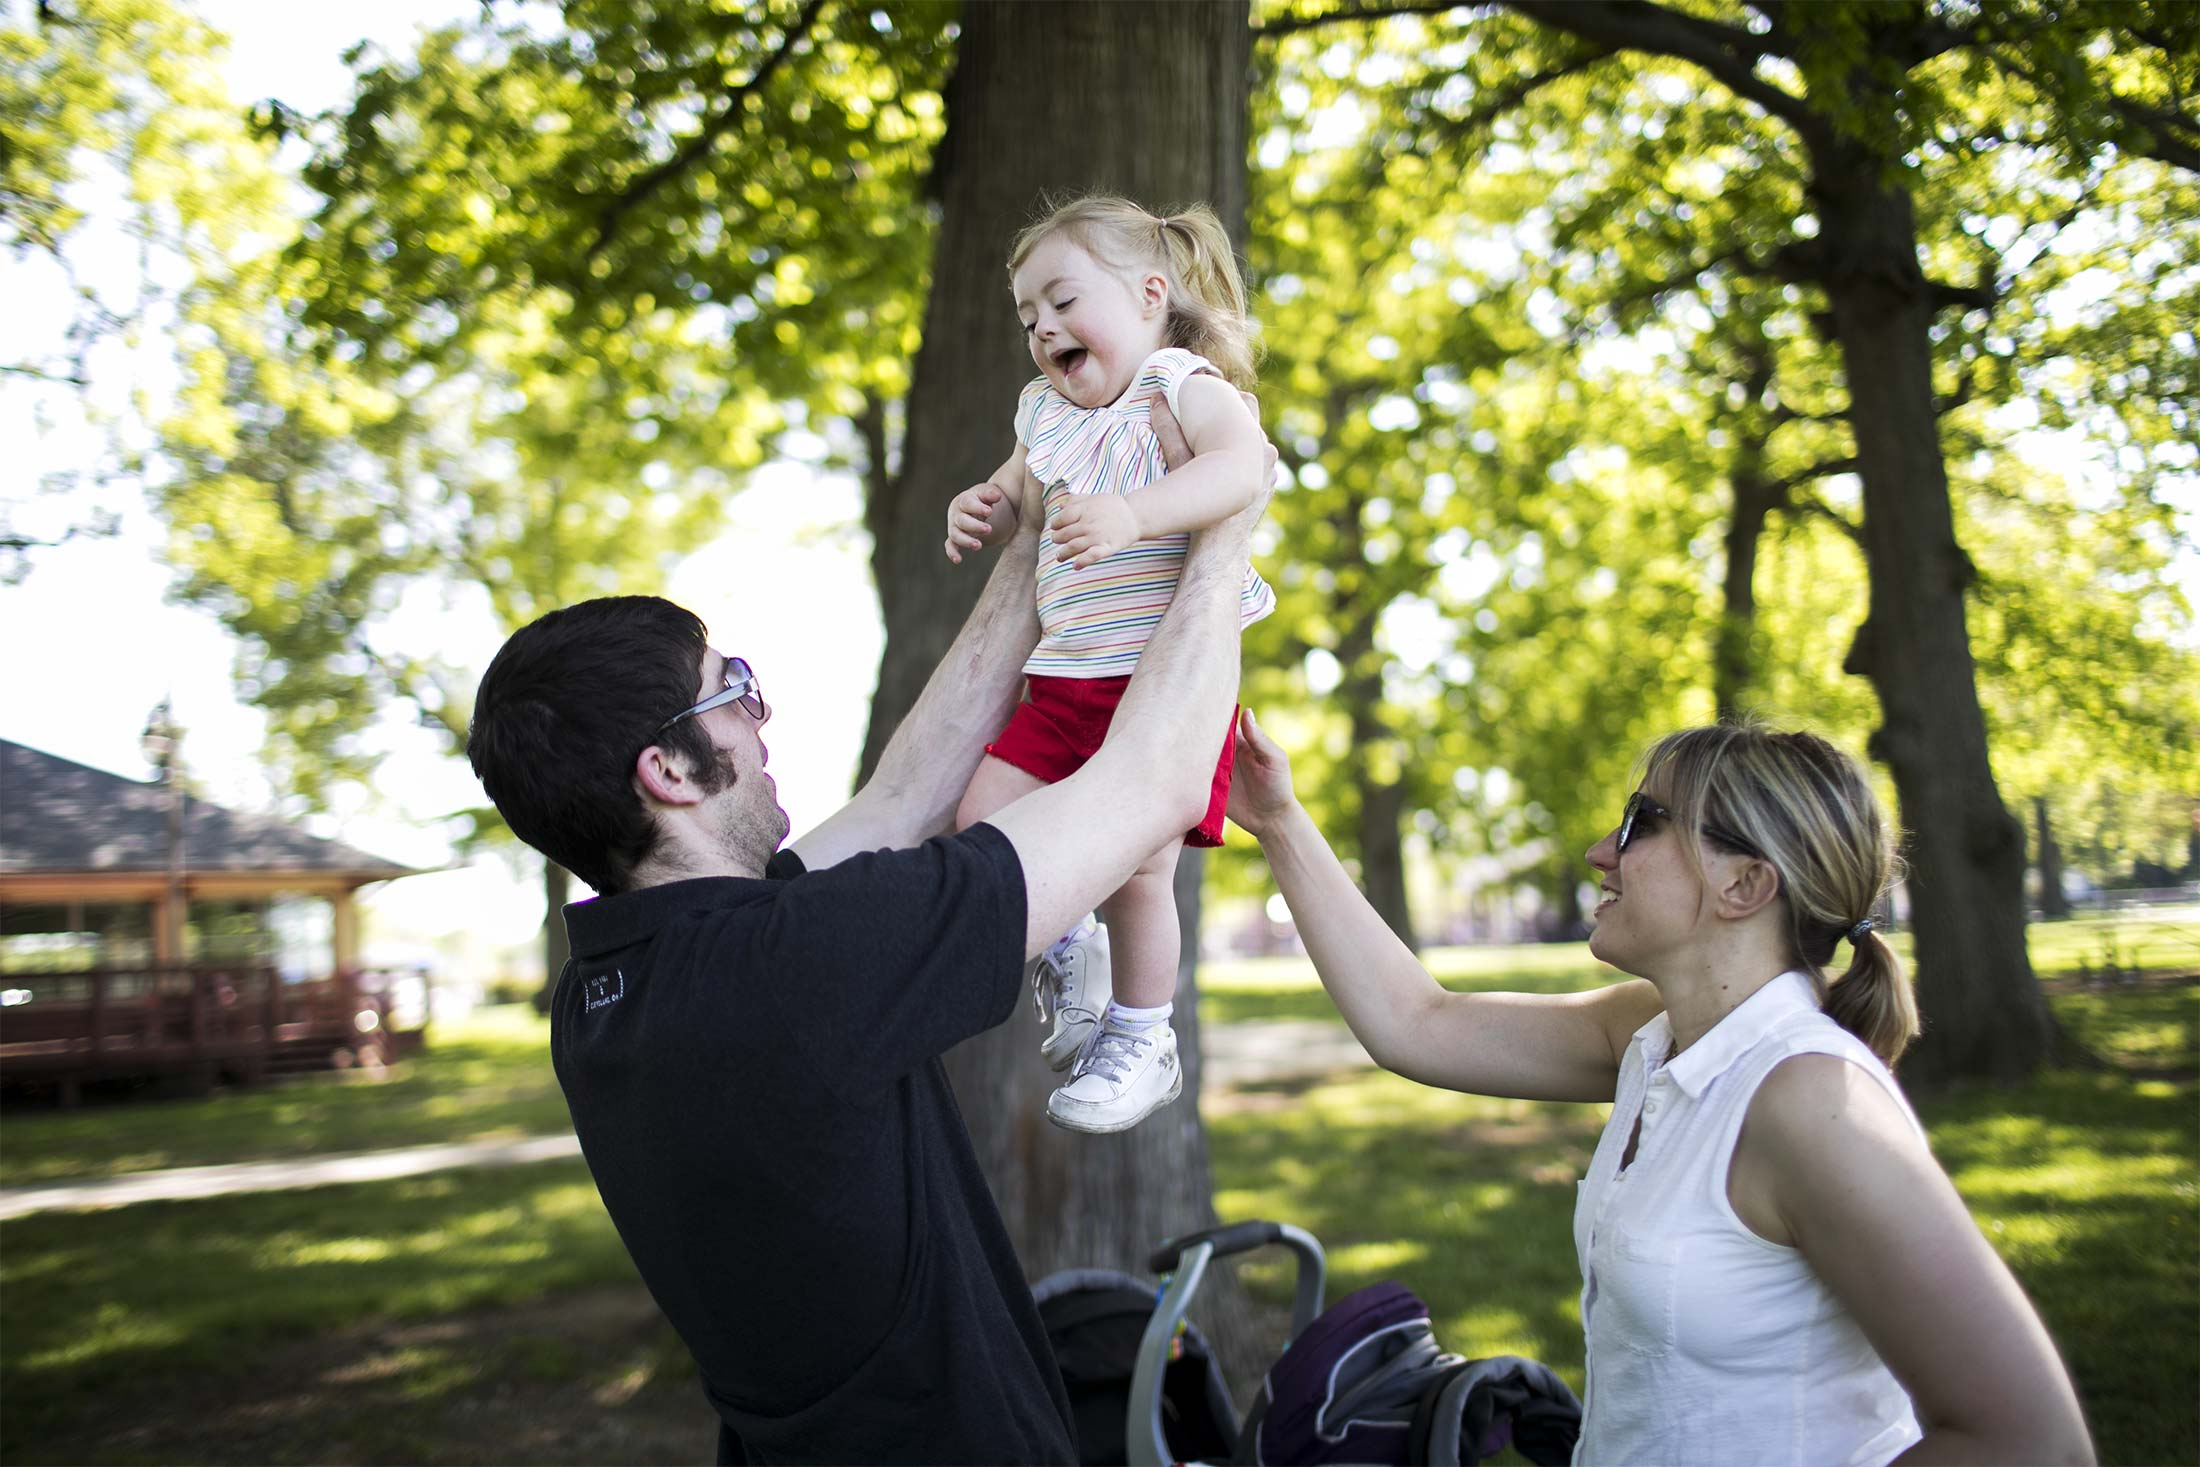 Patrick lifts his daughter, Clementine, at a park as Celeste watches.